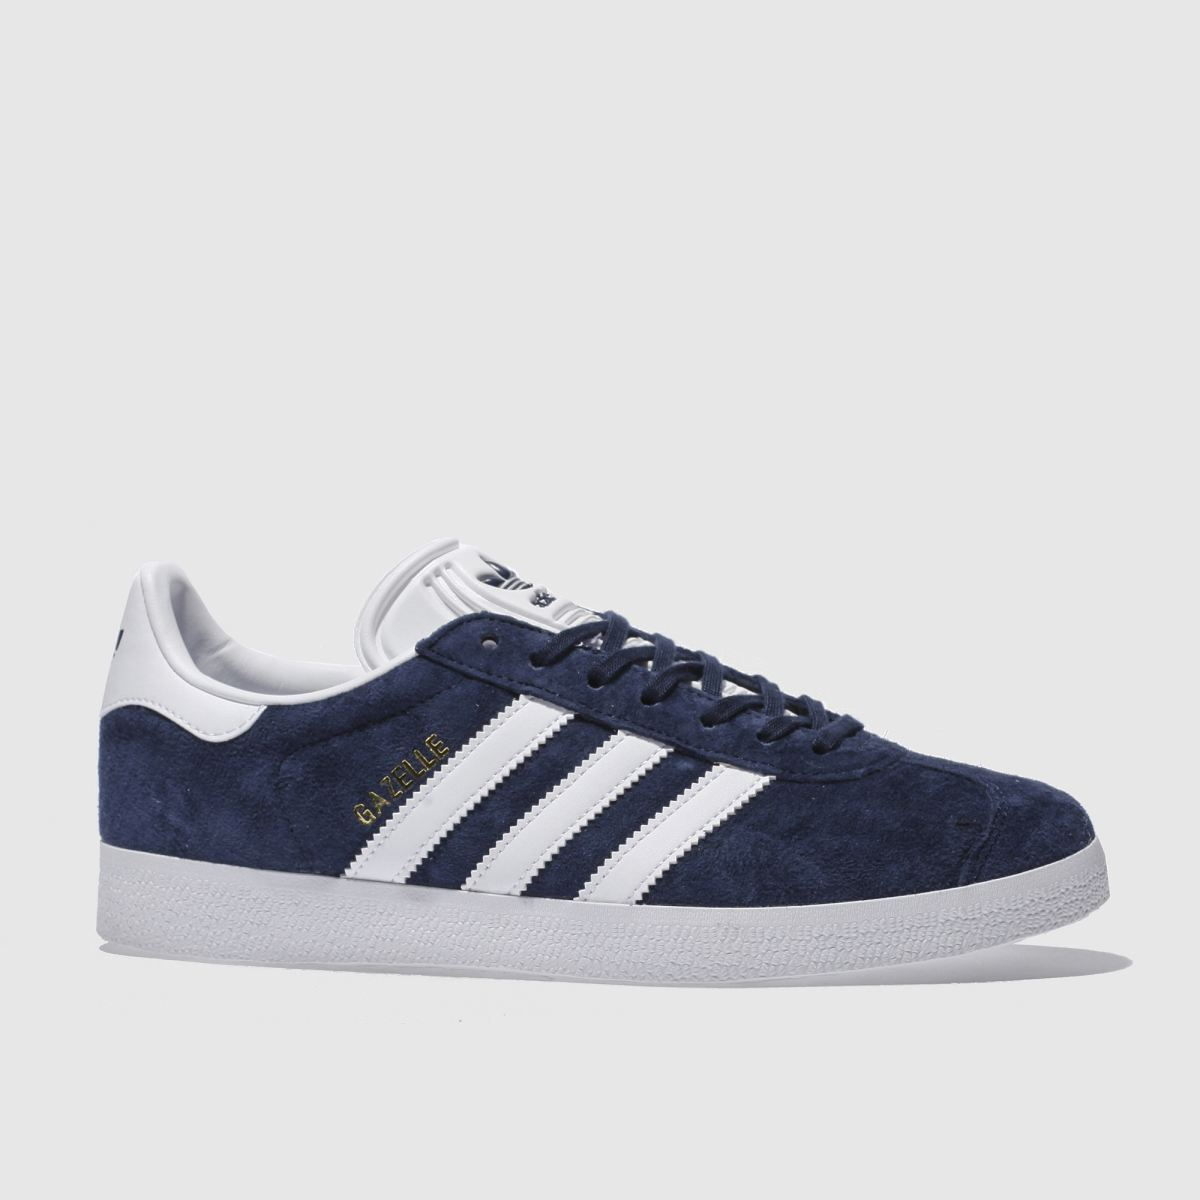 Adidas Gazelle Mens Navy Blue And White Trainers, Size: 10